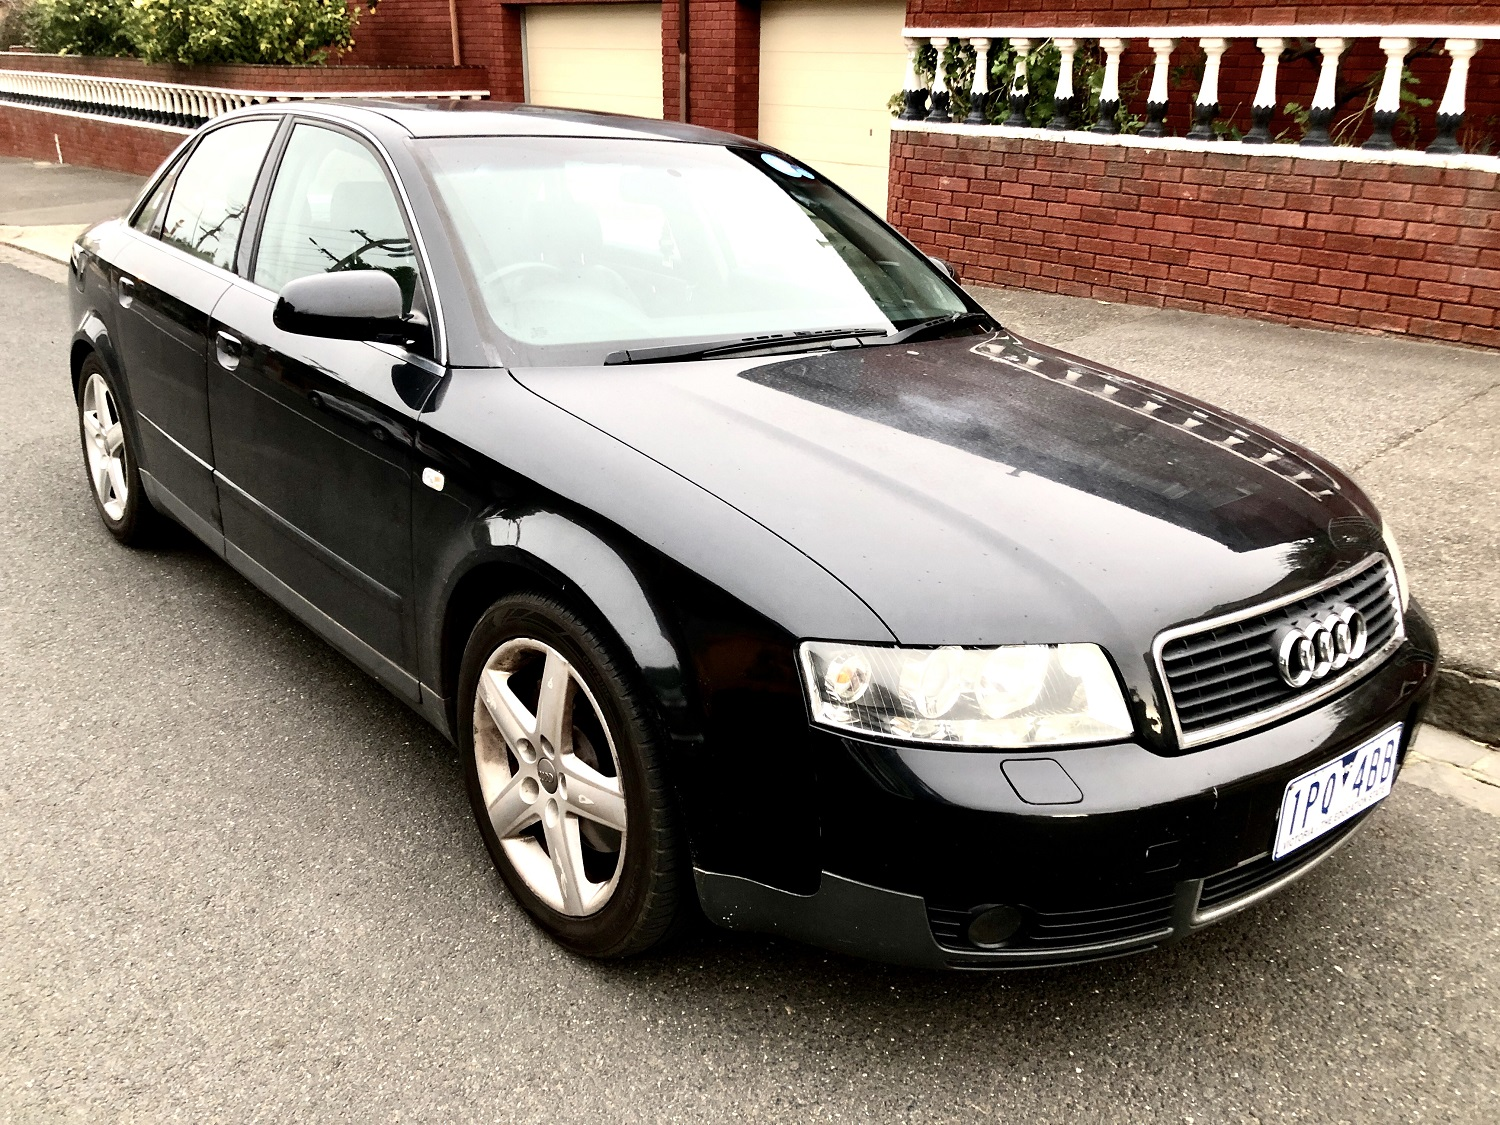 Picture of Rhett's 2002 Audi A4